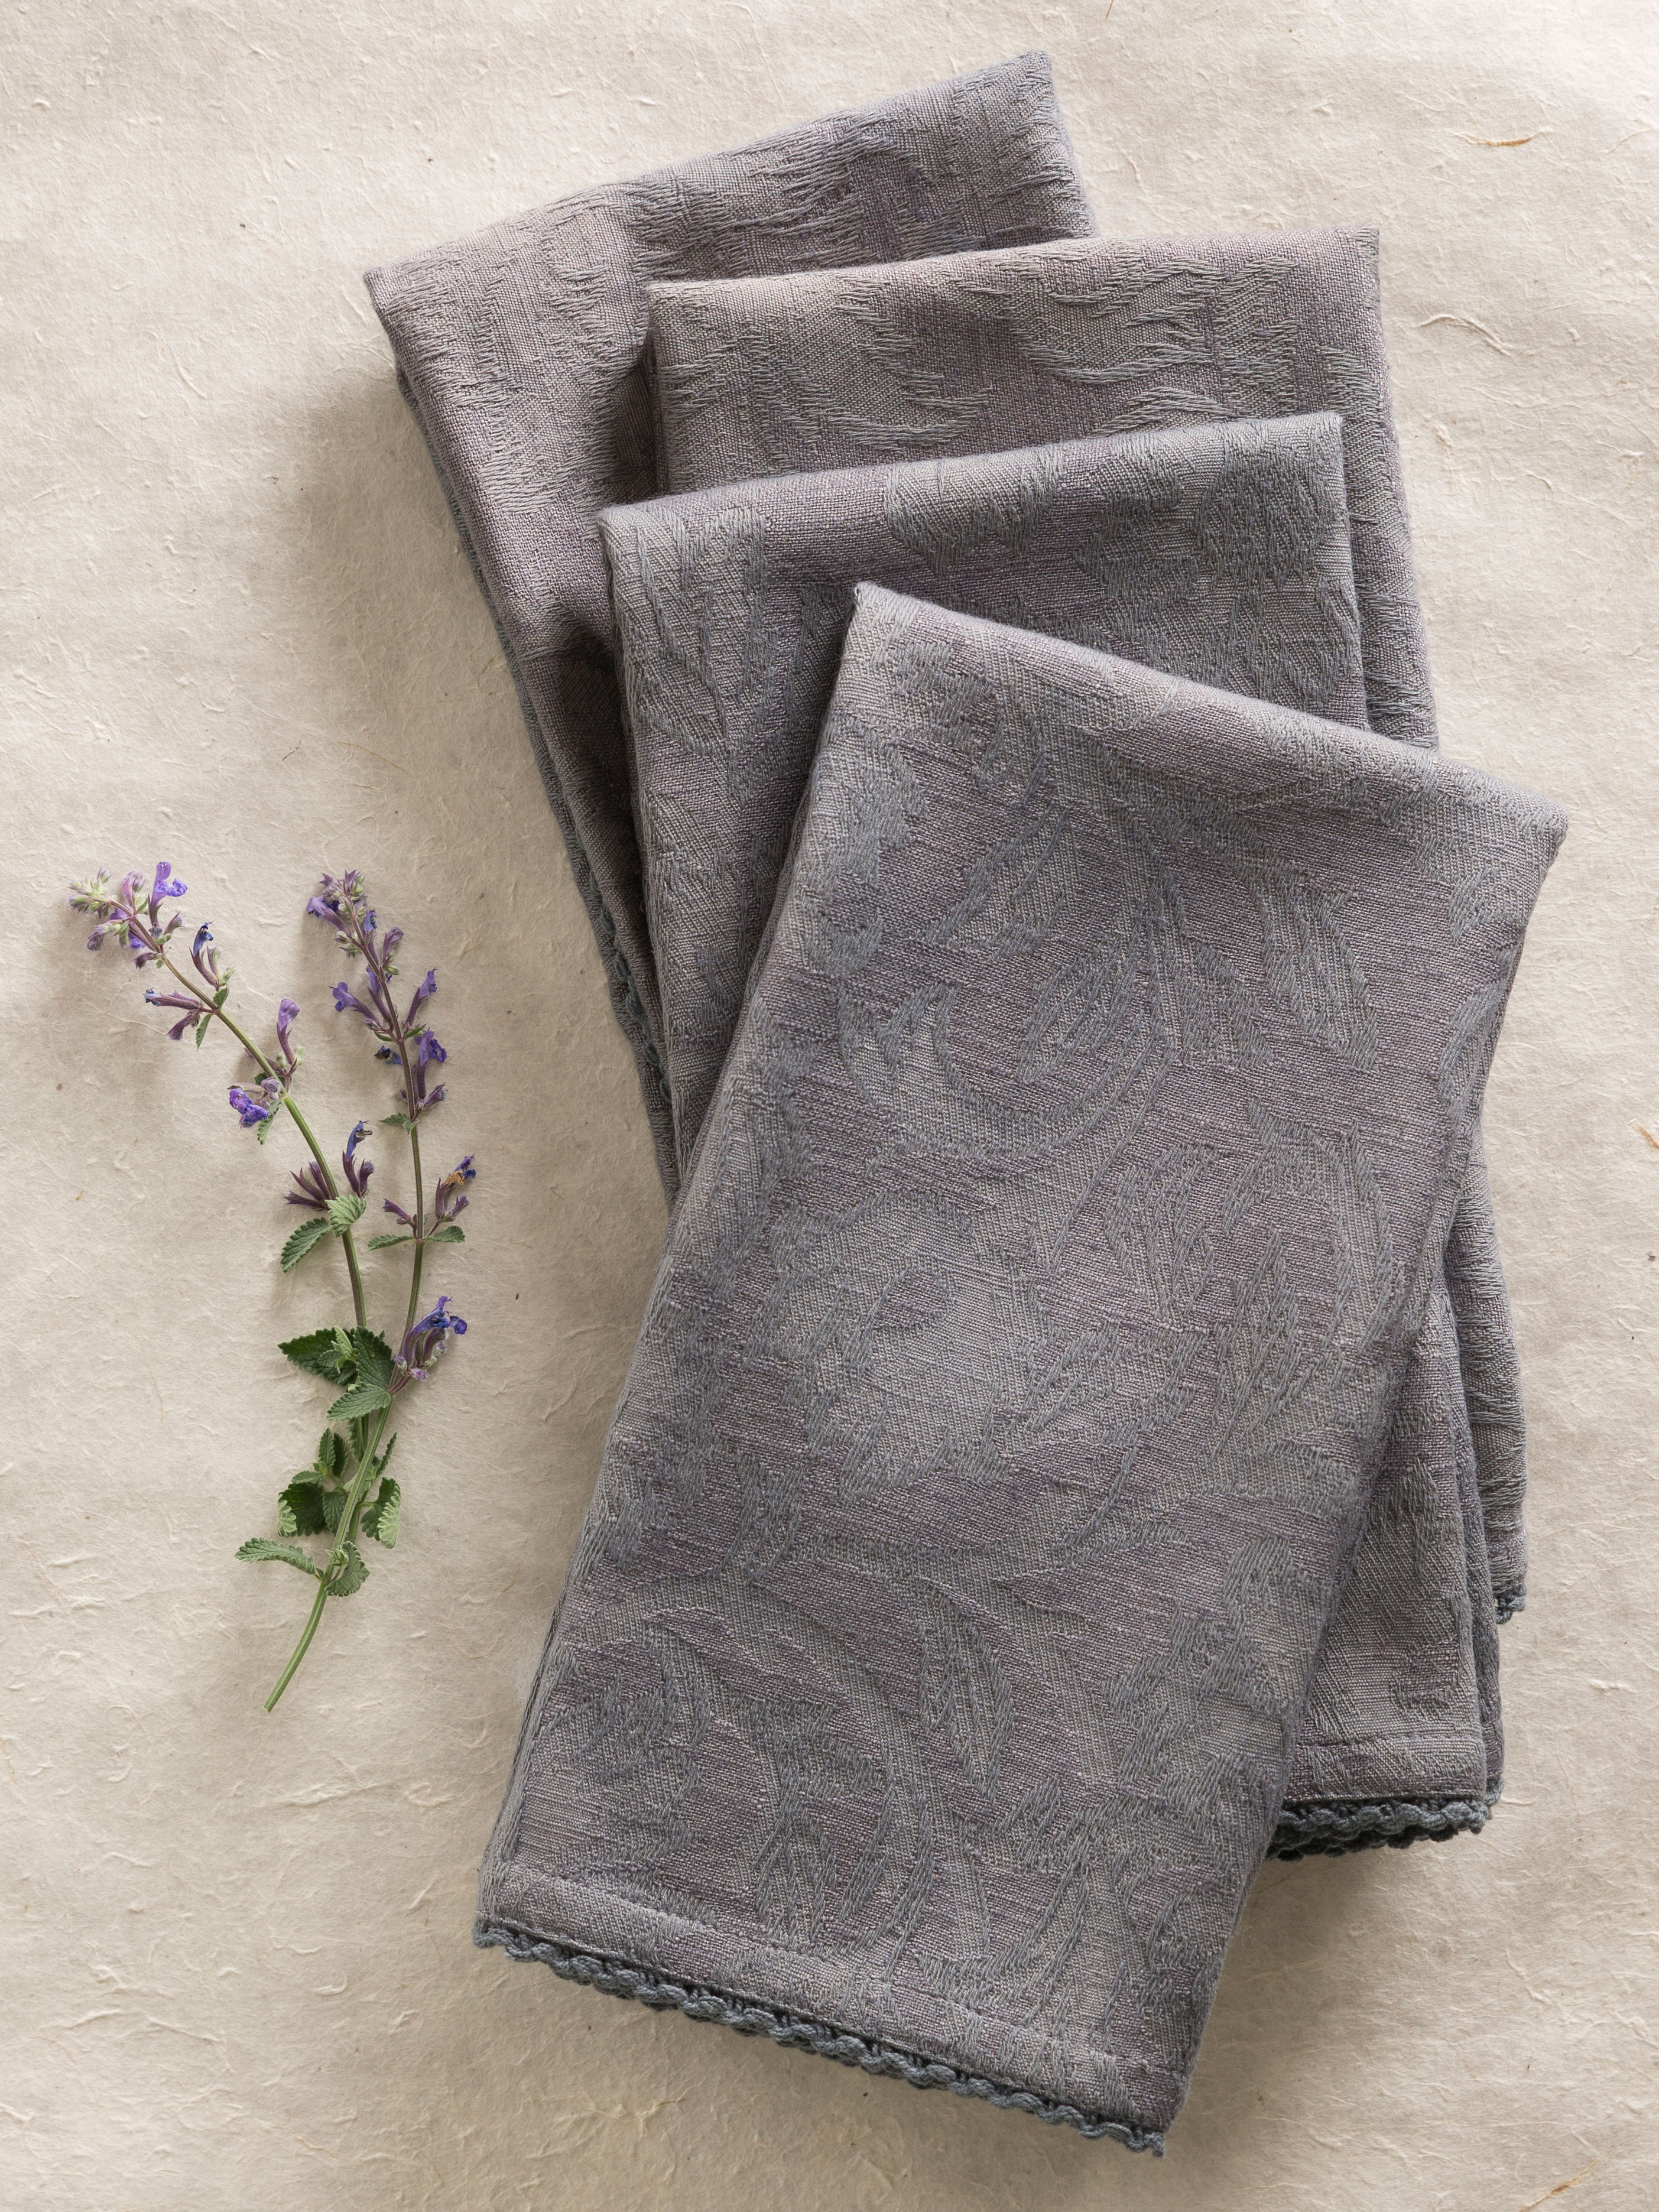 Luxurious Linen Jacquard Napkin Set of 4 - Charcoal